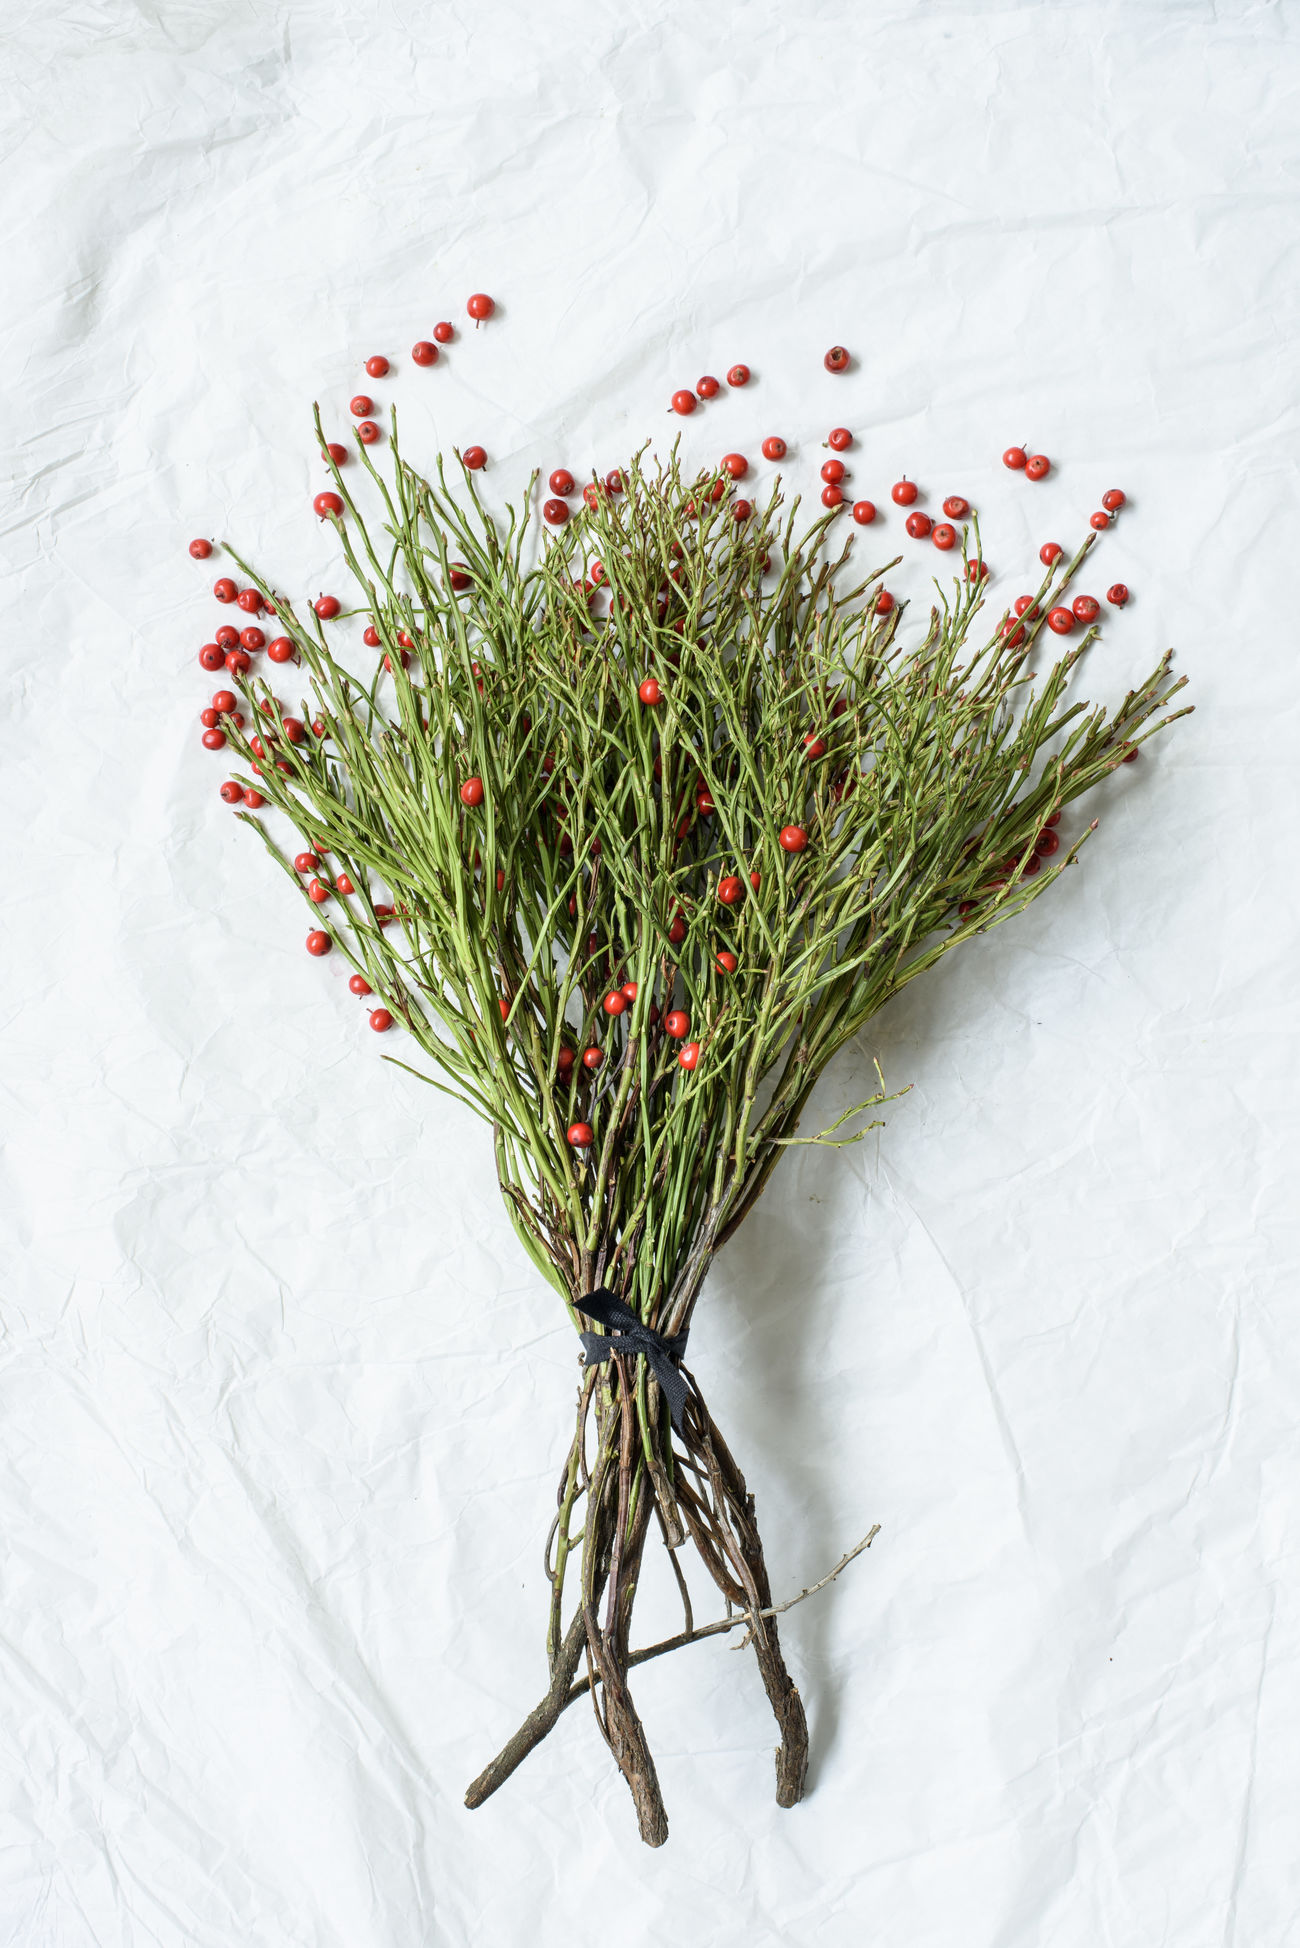 Flat Lay Fruit Huckleberryplant Nature Plant Red Twig Winter Xmas Xmas Decorations